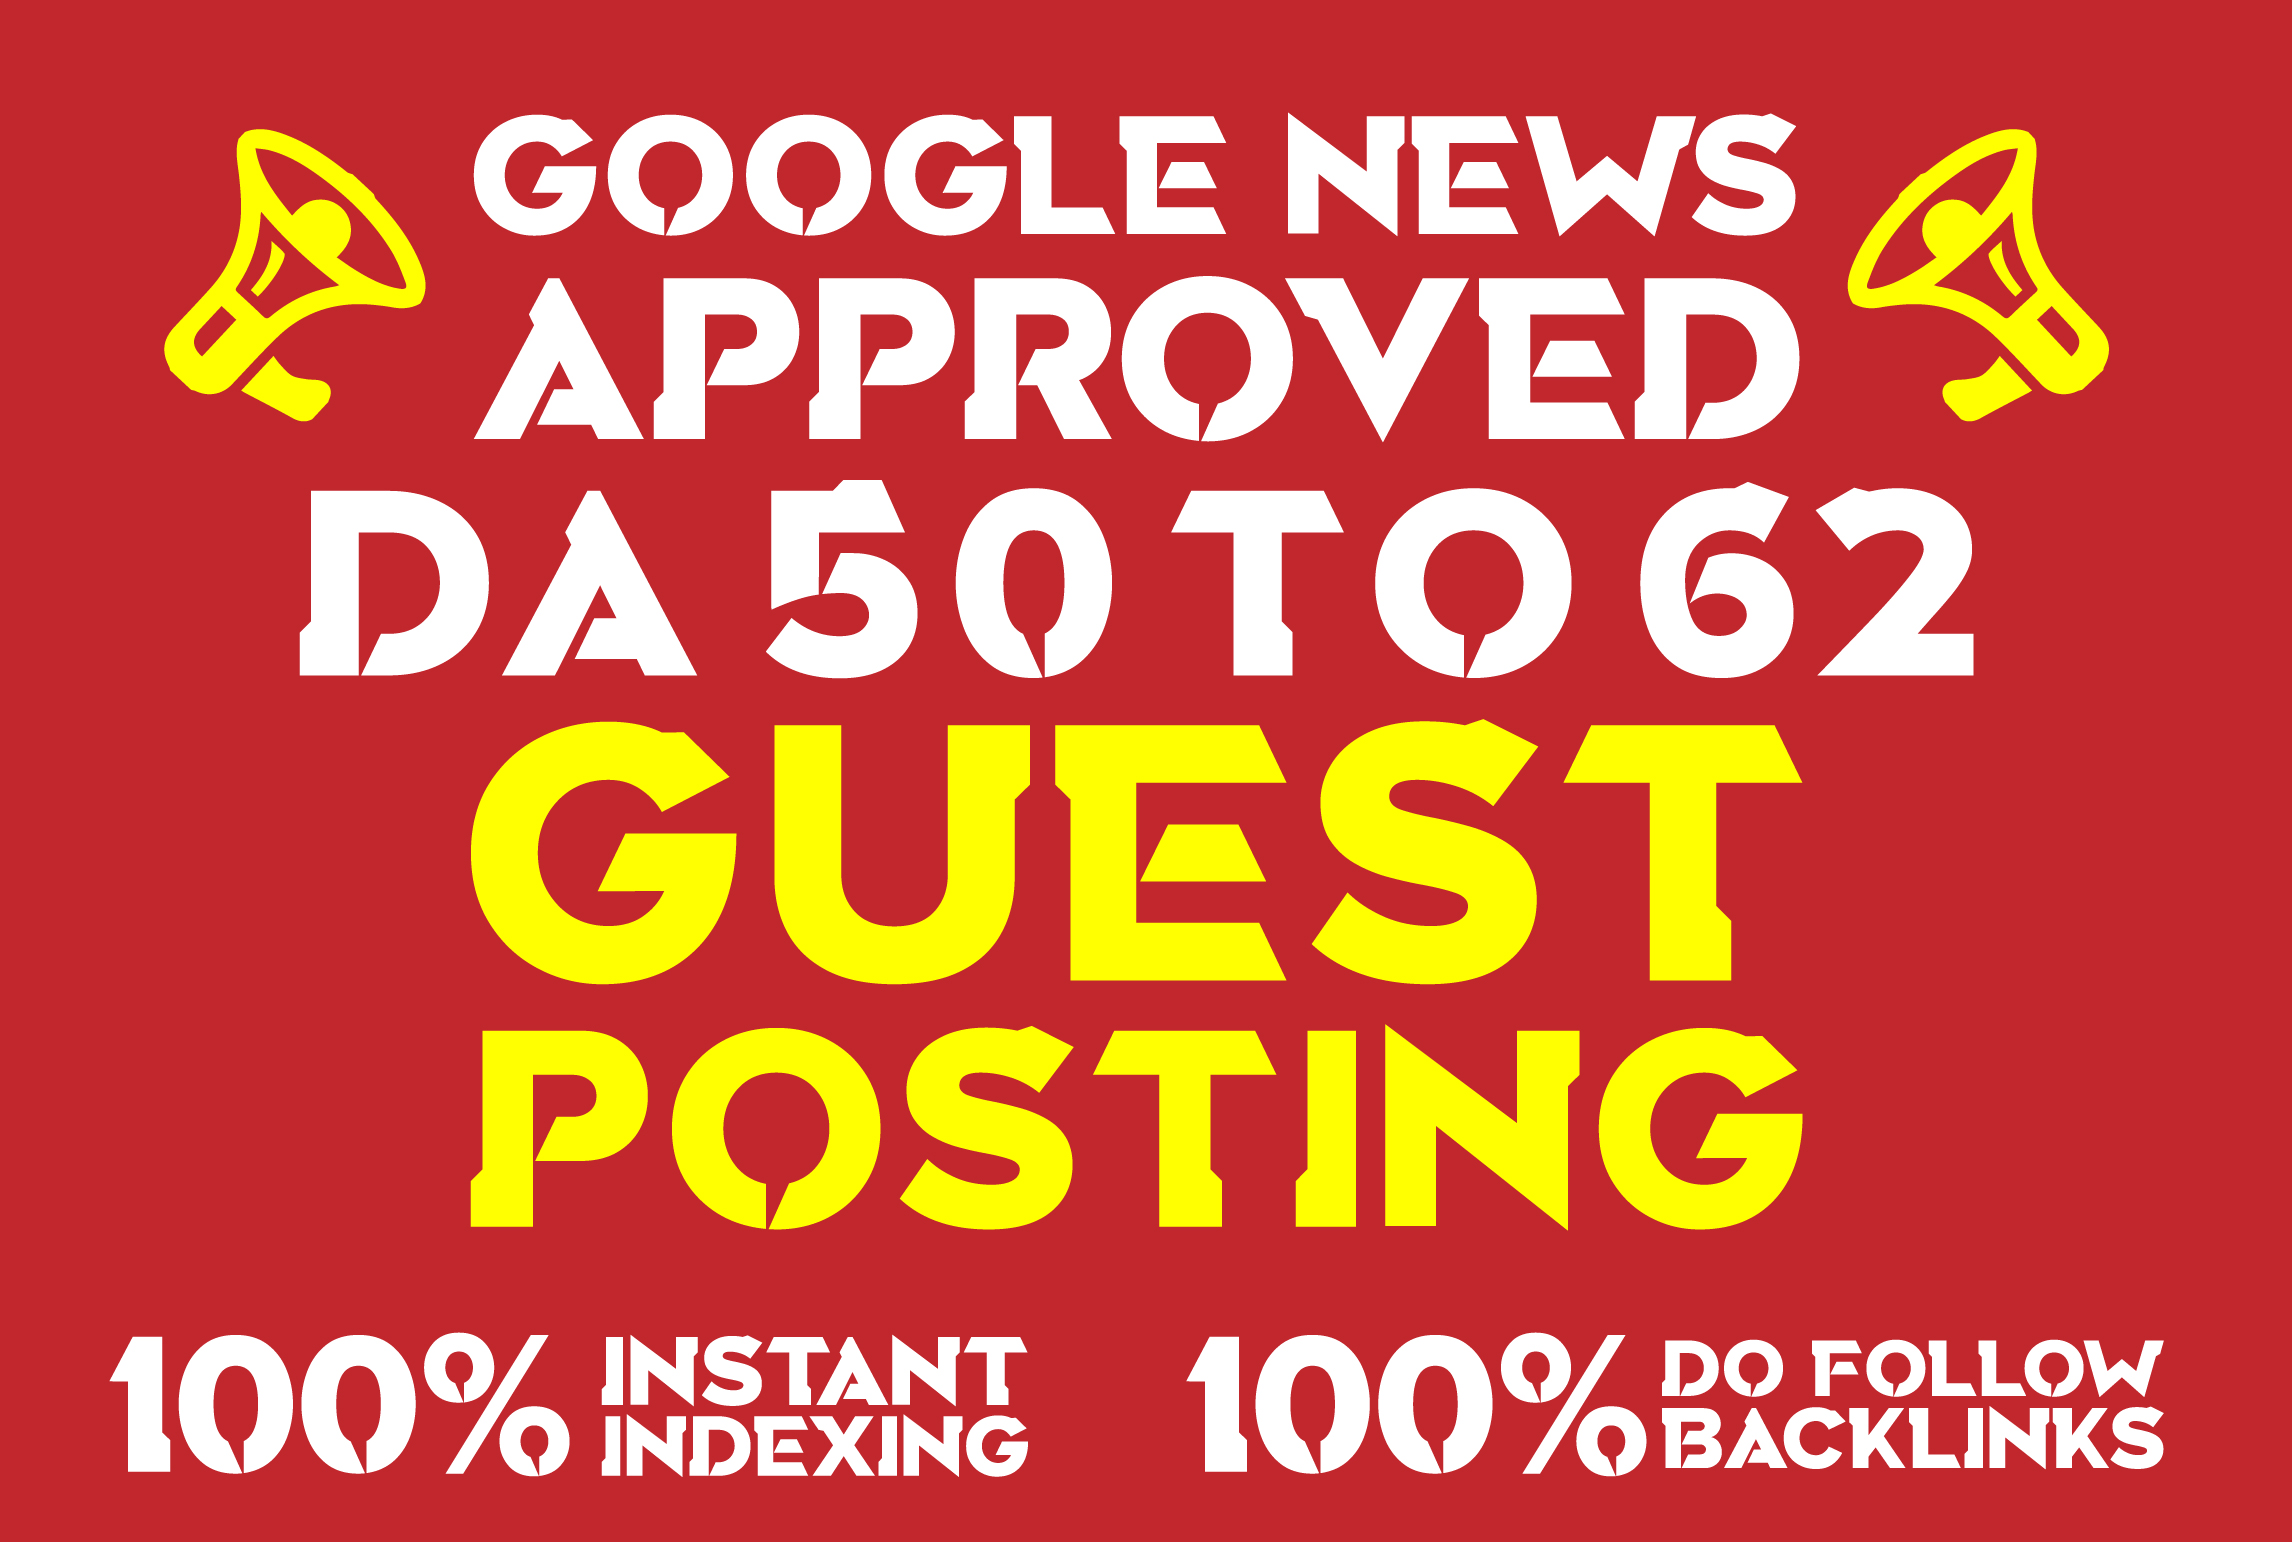 i will do guest posting on my google news approved website with DA 50+